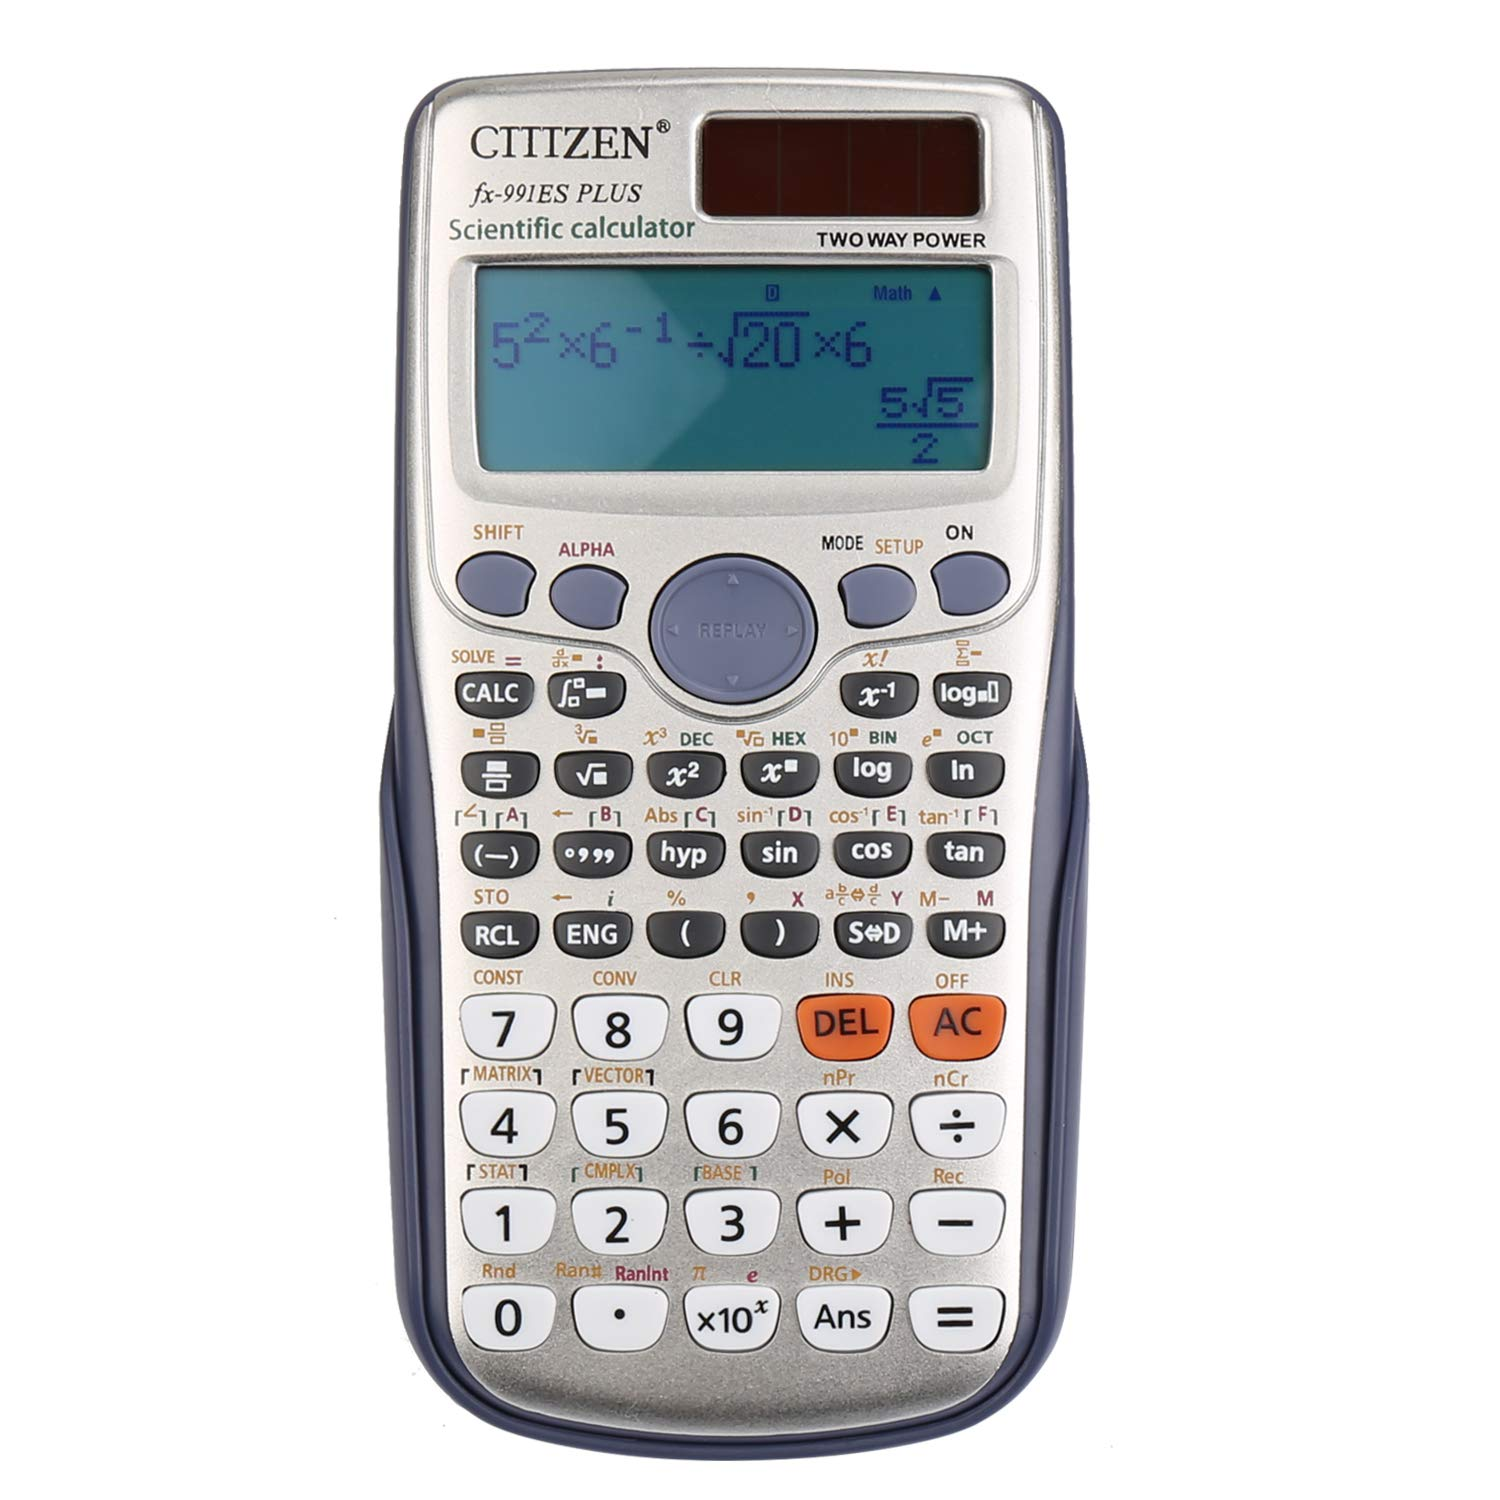 DricRoda Scientific Calculator, Function Calculator Engineering Calculator High School Calculator with Solar Power & Large LCD Display for College, University, Office, Home and Business by DricRoda